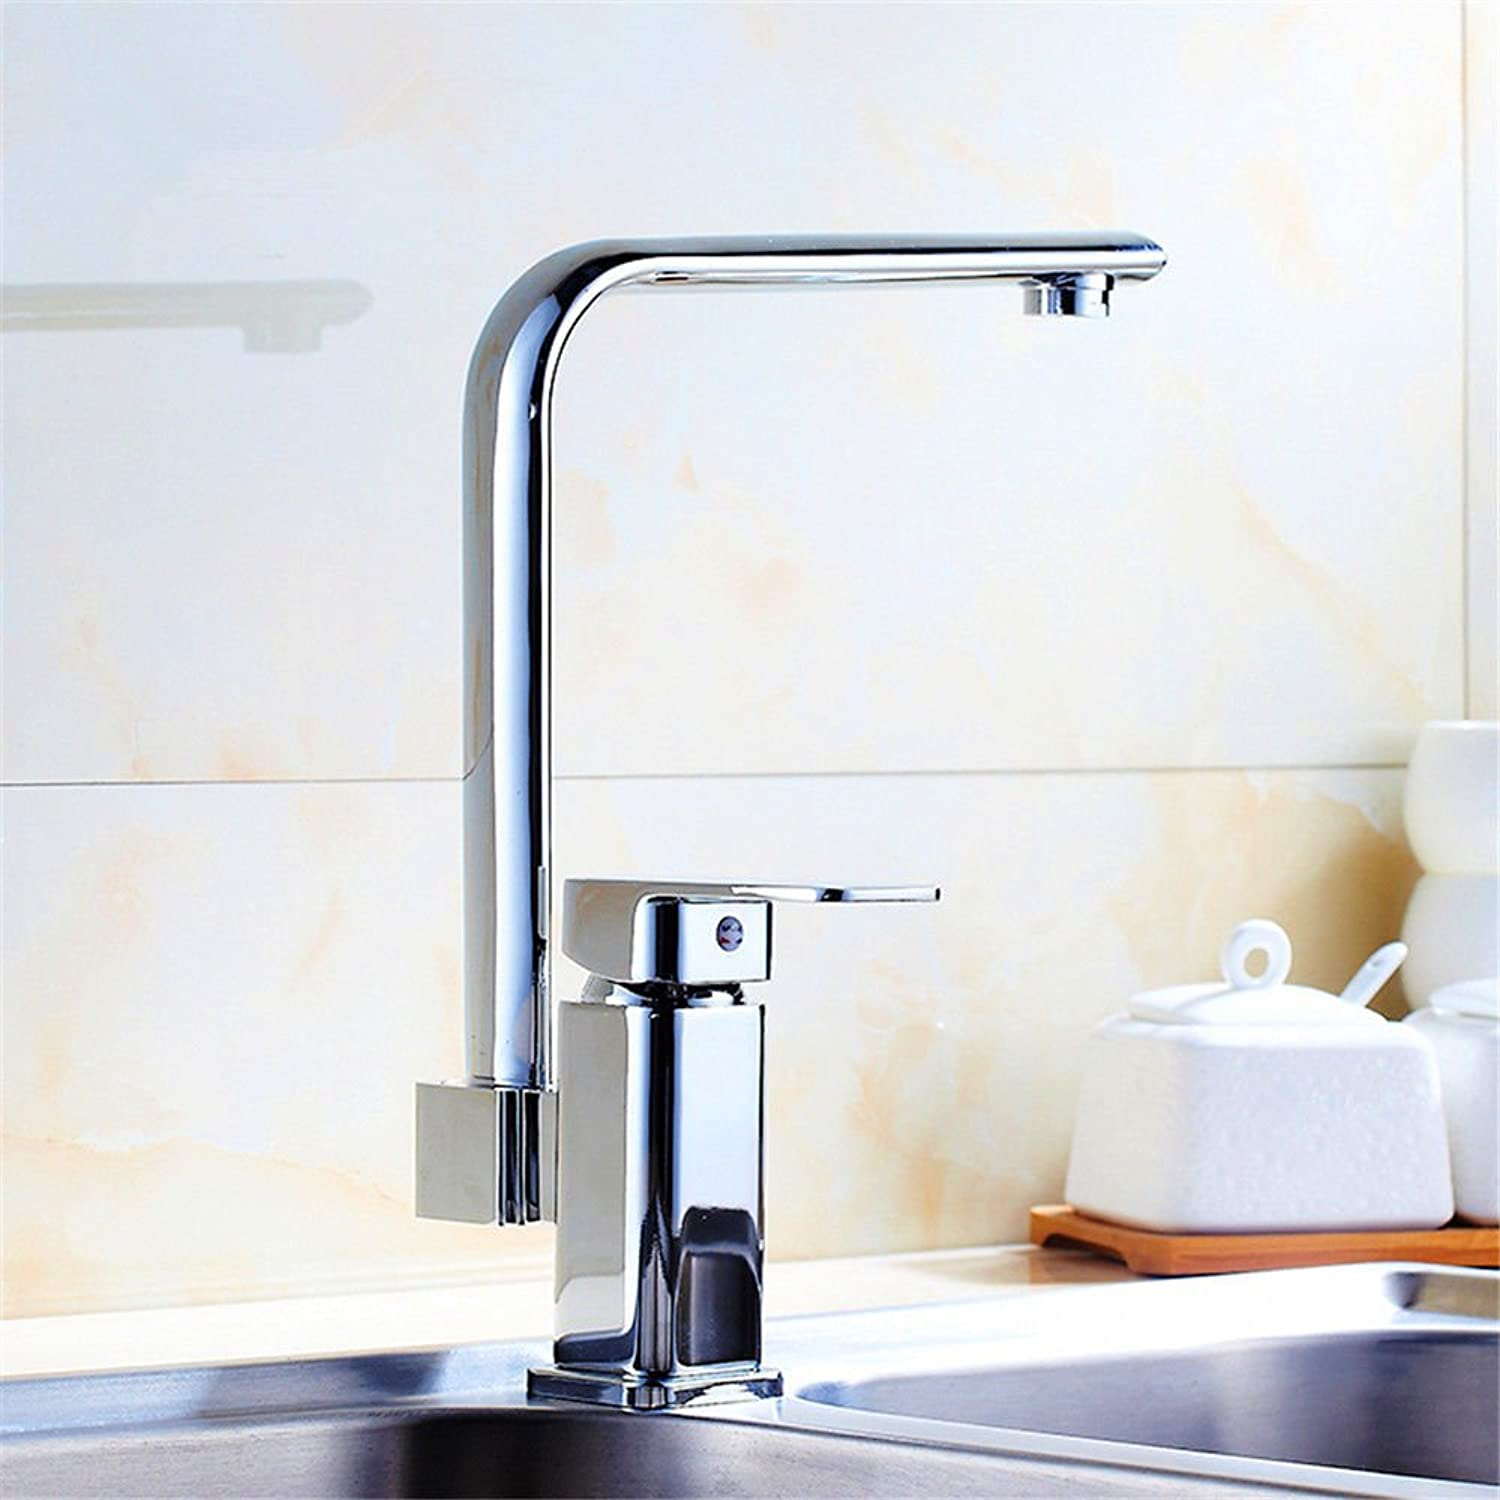 Gyps Faucet Basin Mixer Tap Waterfall Faucet Antique Bathroom Kitchen faucet and cold water tap to wash dishes slot basin basin with two full copper kitchen basin mixer